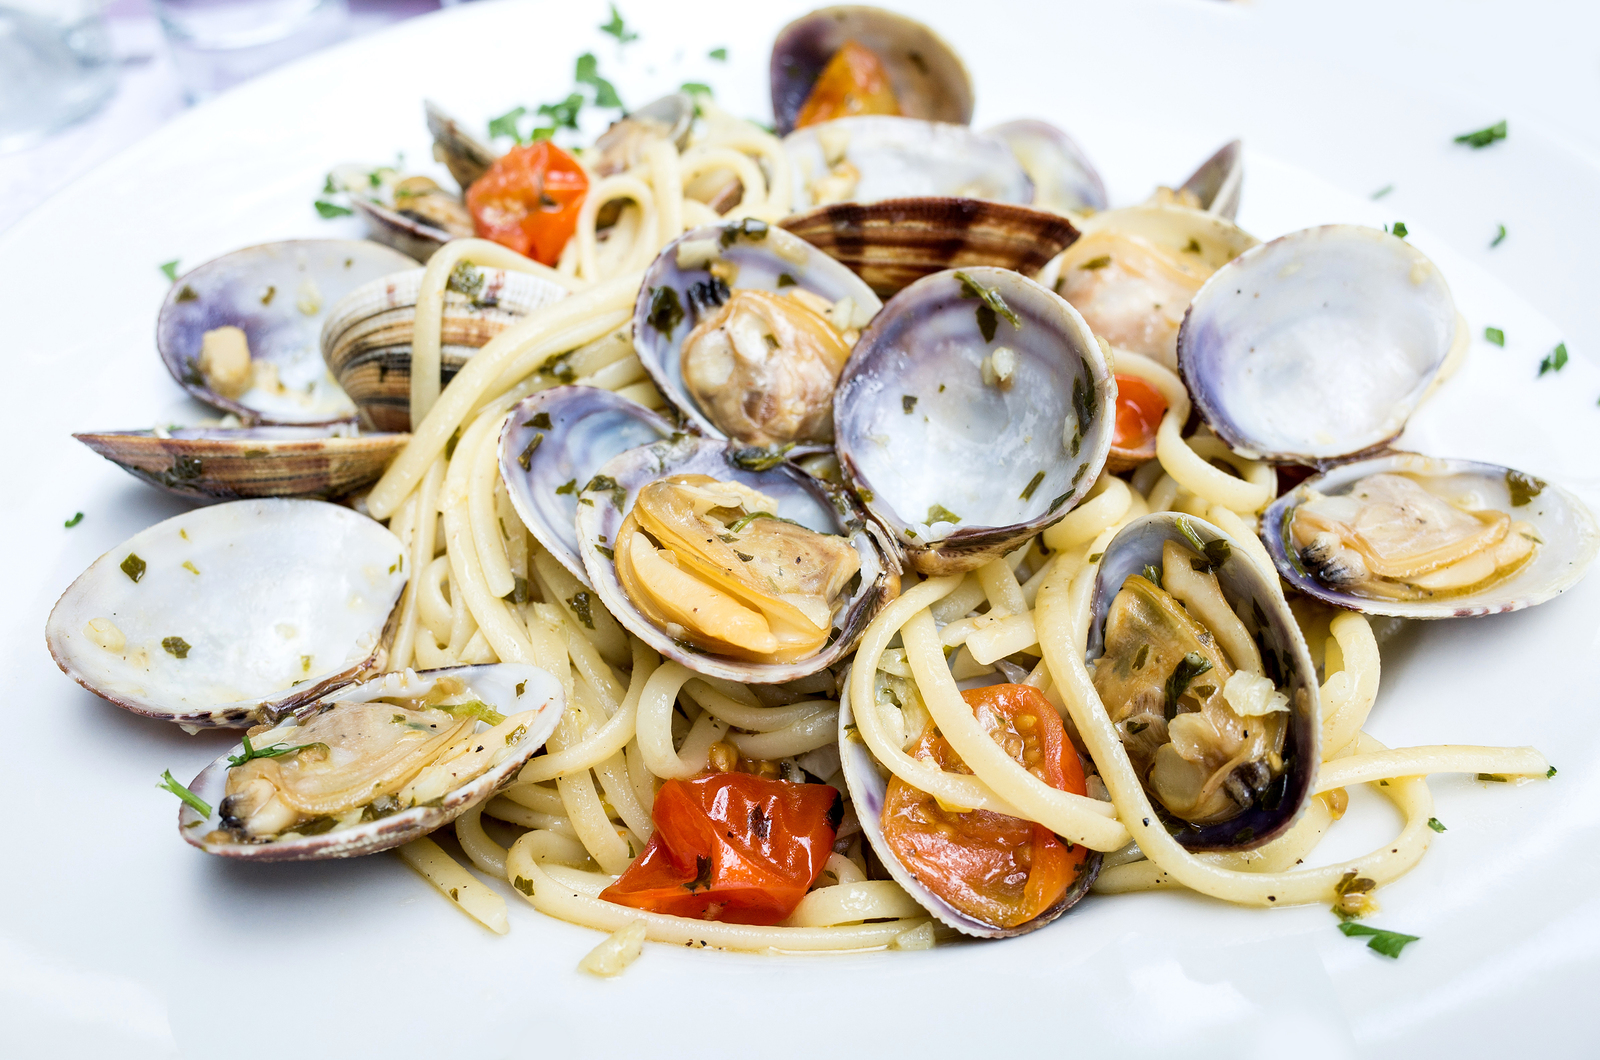 Mussels and Clams for Dinner